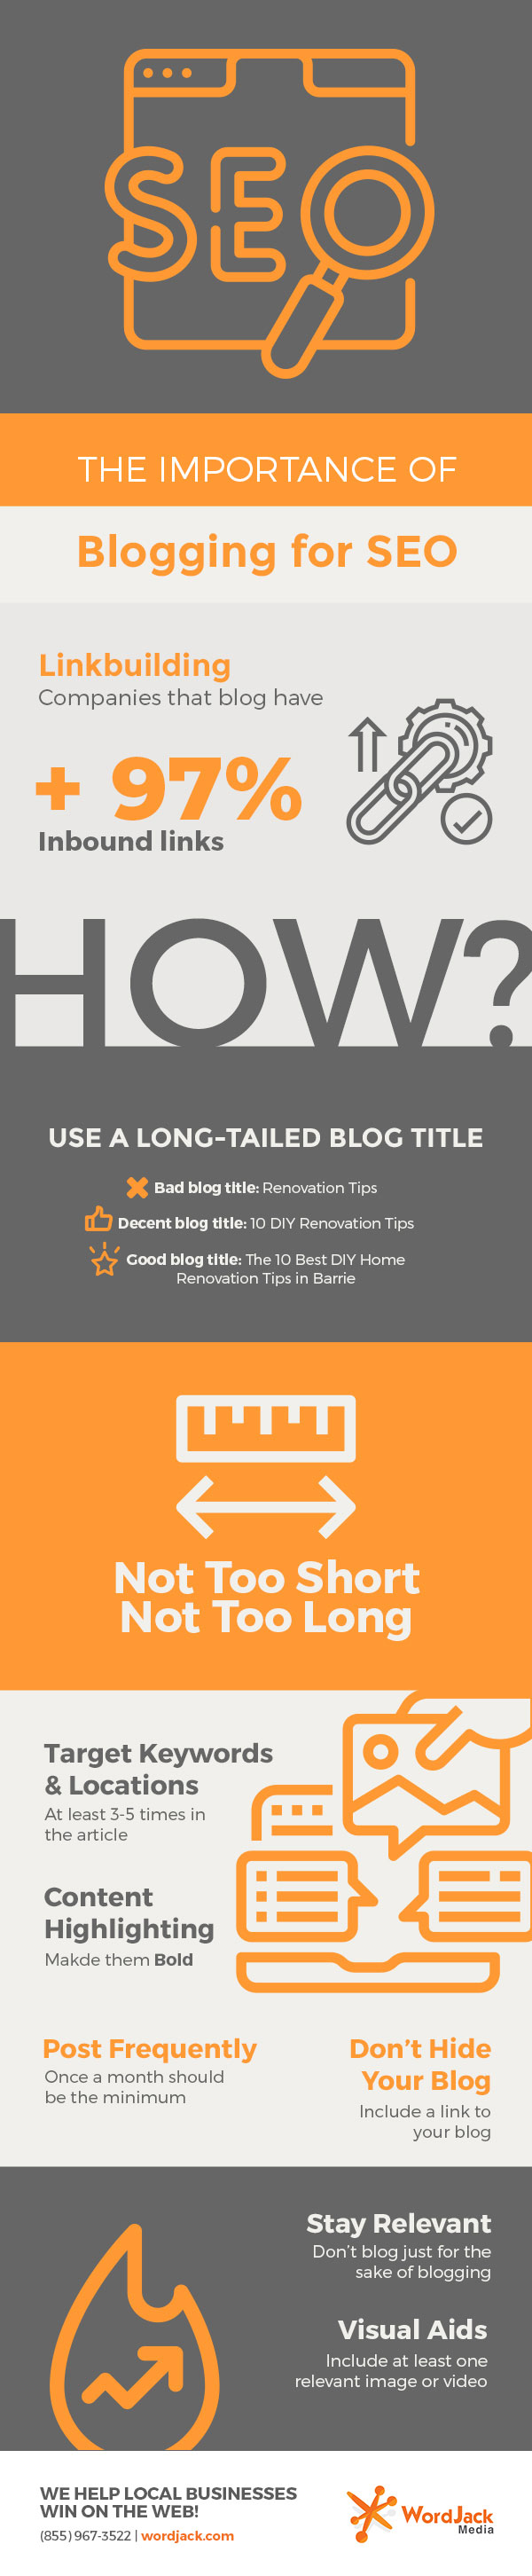 The Importance of Blogging for SEO